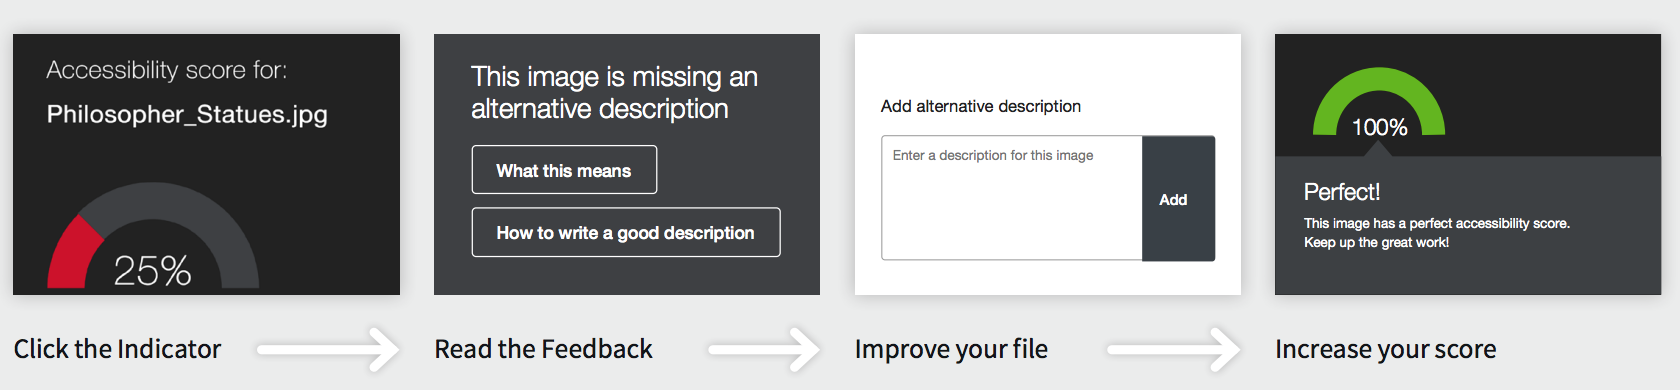 Click the indicator, then read the feedback, then improve your file, then increase your score